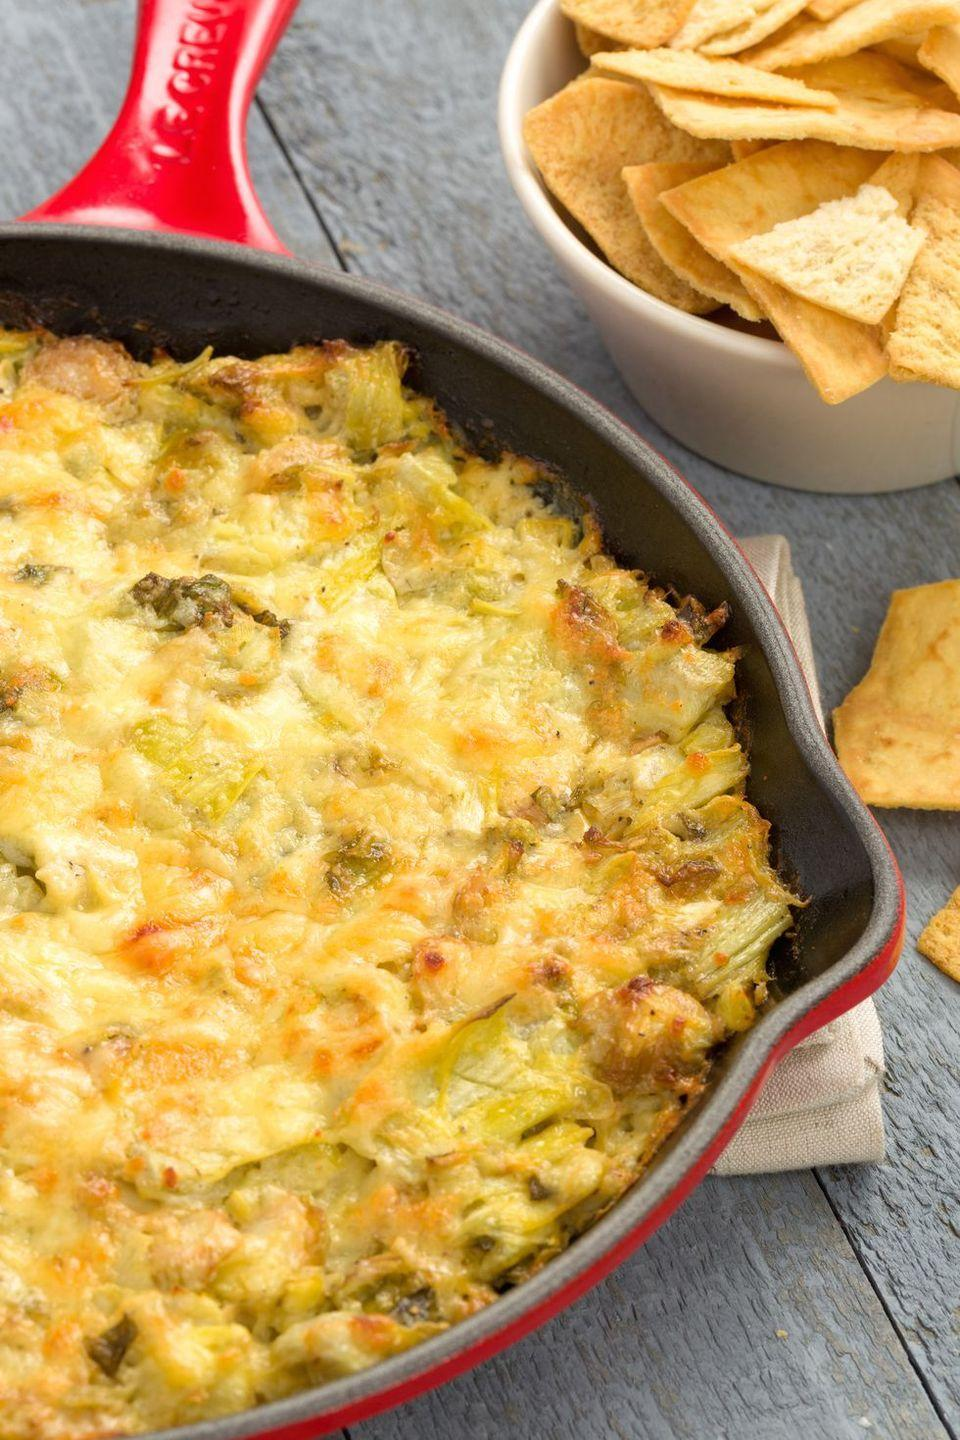 """<p>Replace the spinach in the holiday party classic with Brussels sprouts and you won't be mad.</p><p>Get the recipe from <a href=""""https://www.delish.com/holiday-recipes/thanksgiving/recipes/a44805/cheesy-brussels-sprout-artichoke-dip-recipe/"""" rel=""""nofollow noopener"""" target=""""_blank"""" data-ylk=""""slk:Delish"""" class=""""link rapid-noclick-resp"""">Delish</a>.</p>"""